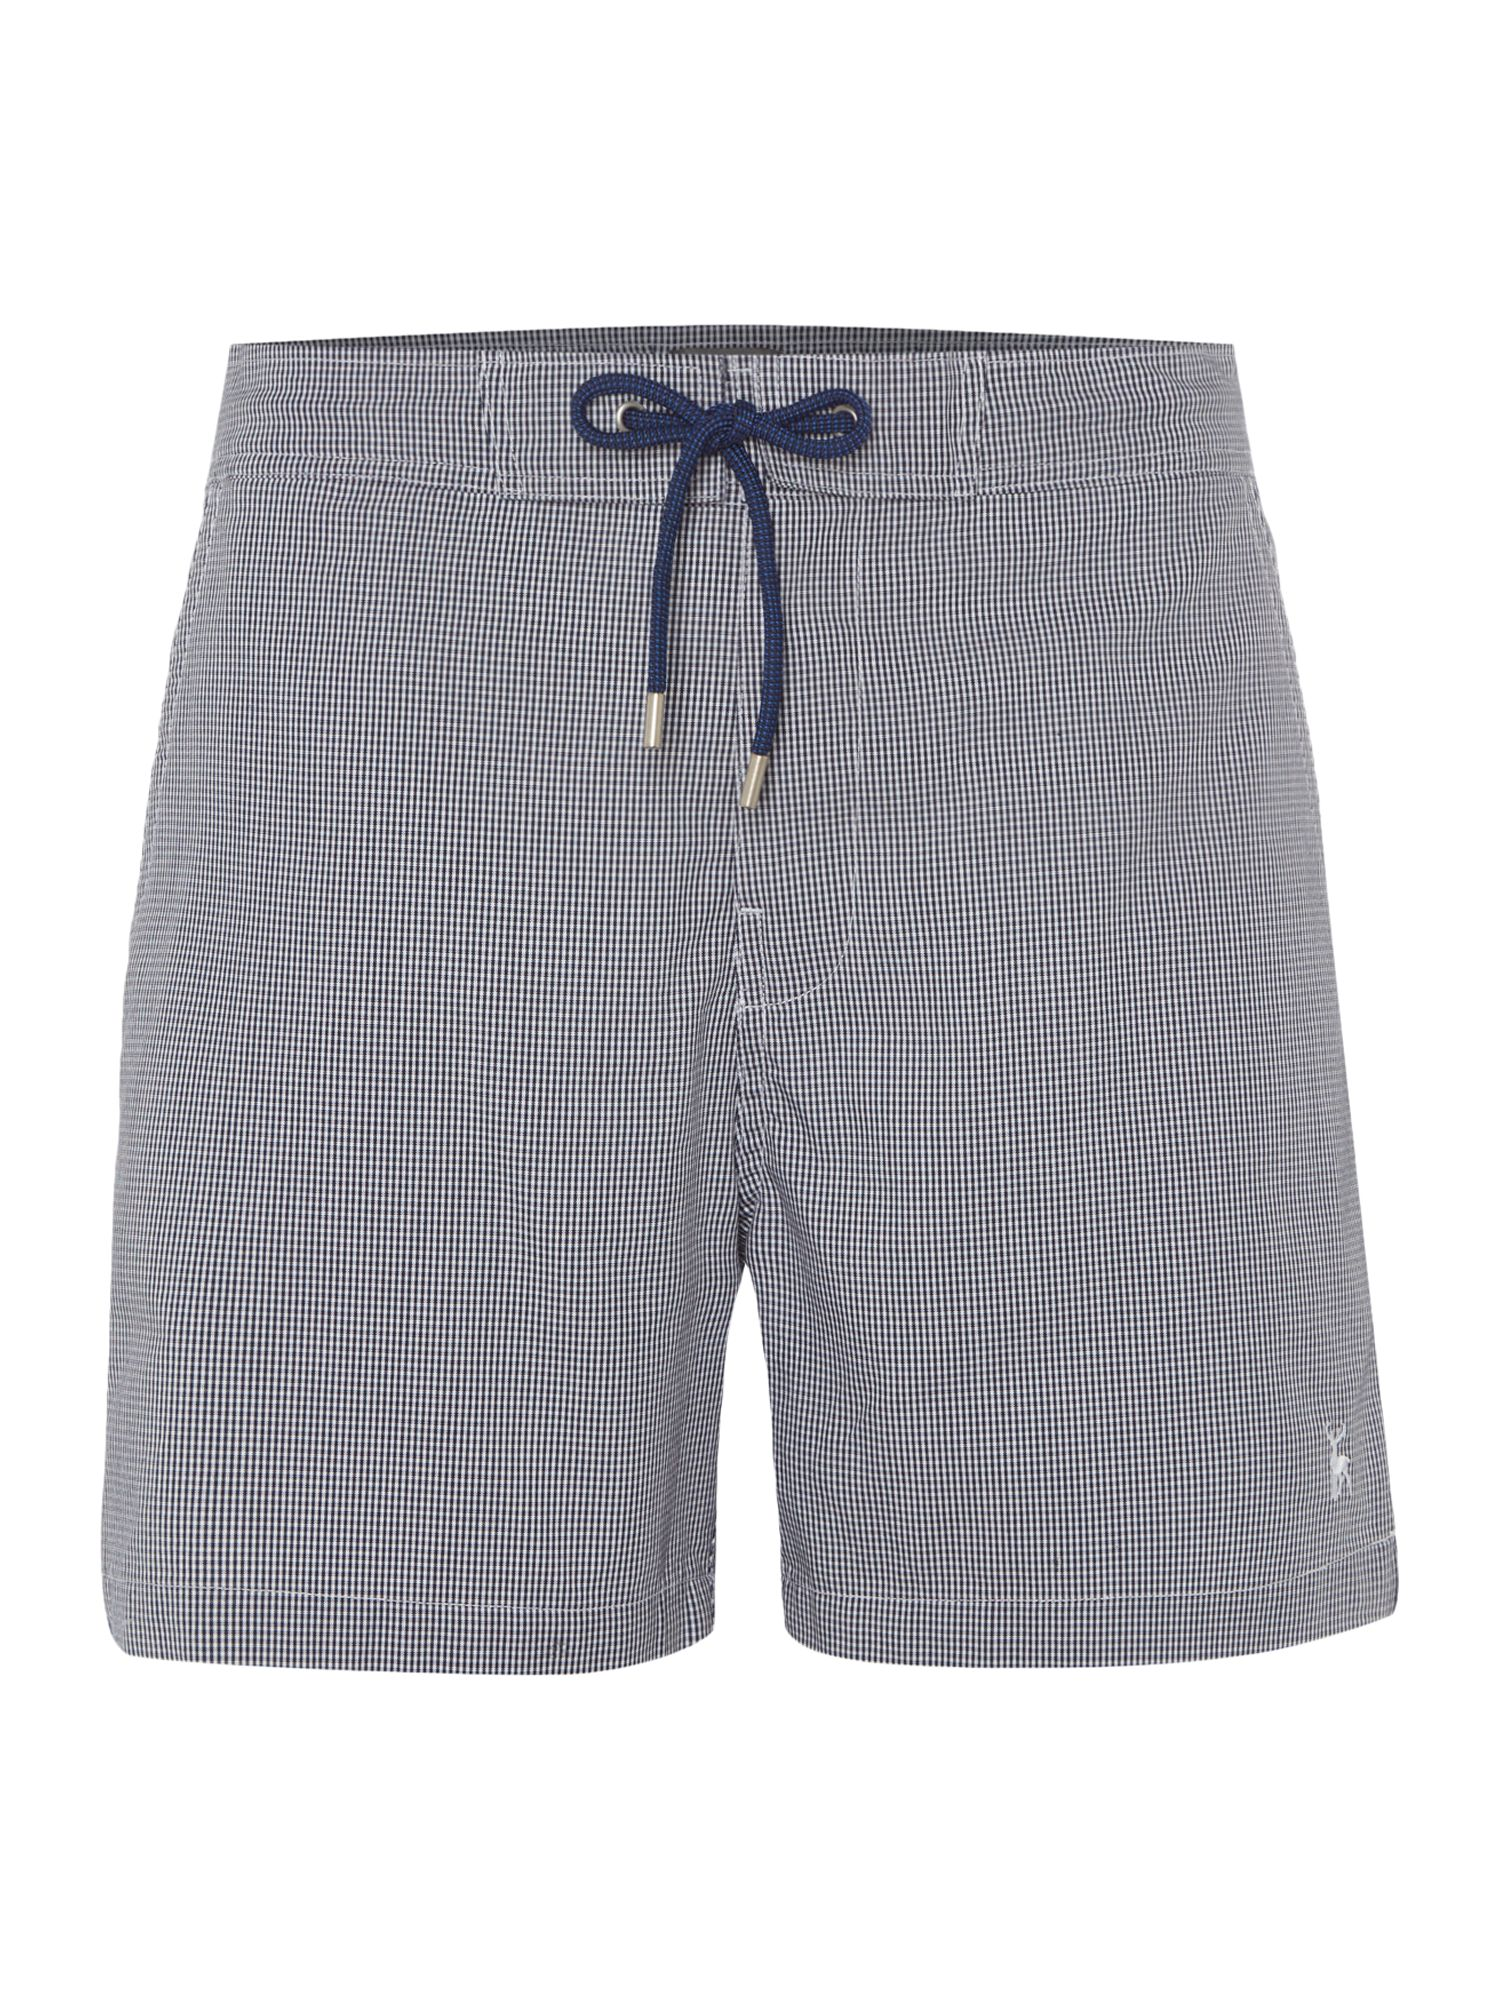 Men's Linea Micro Gingham Textured Swim Short, Blue